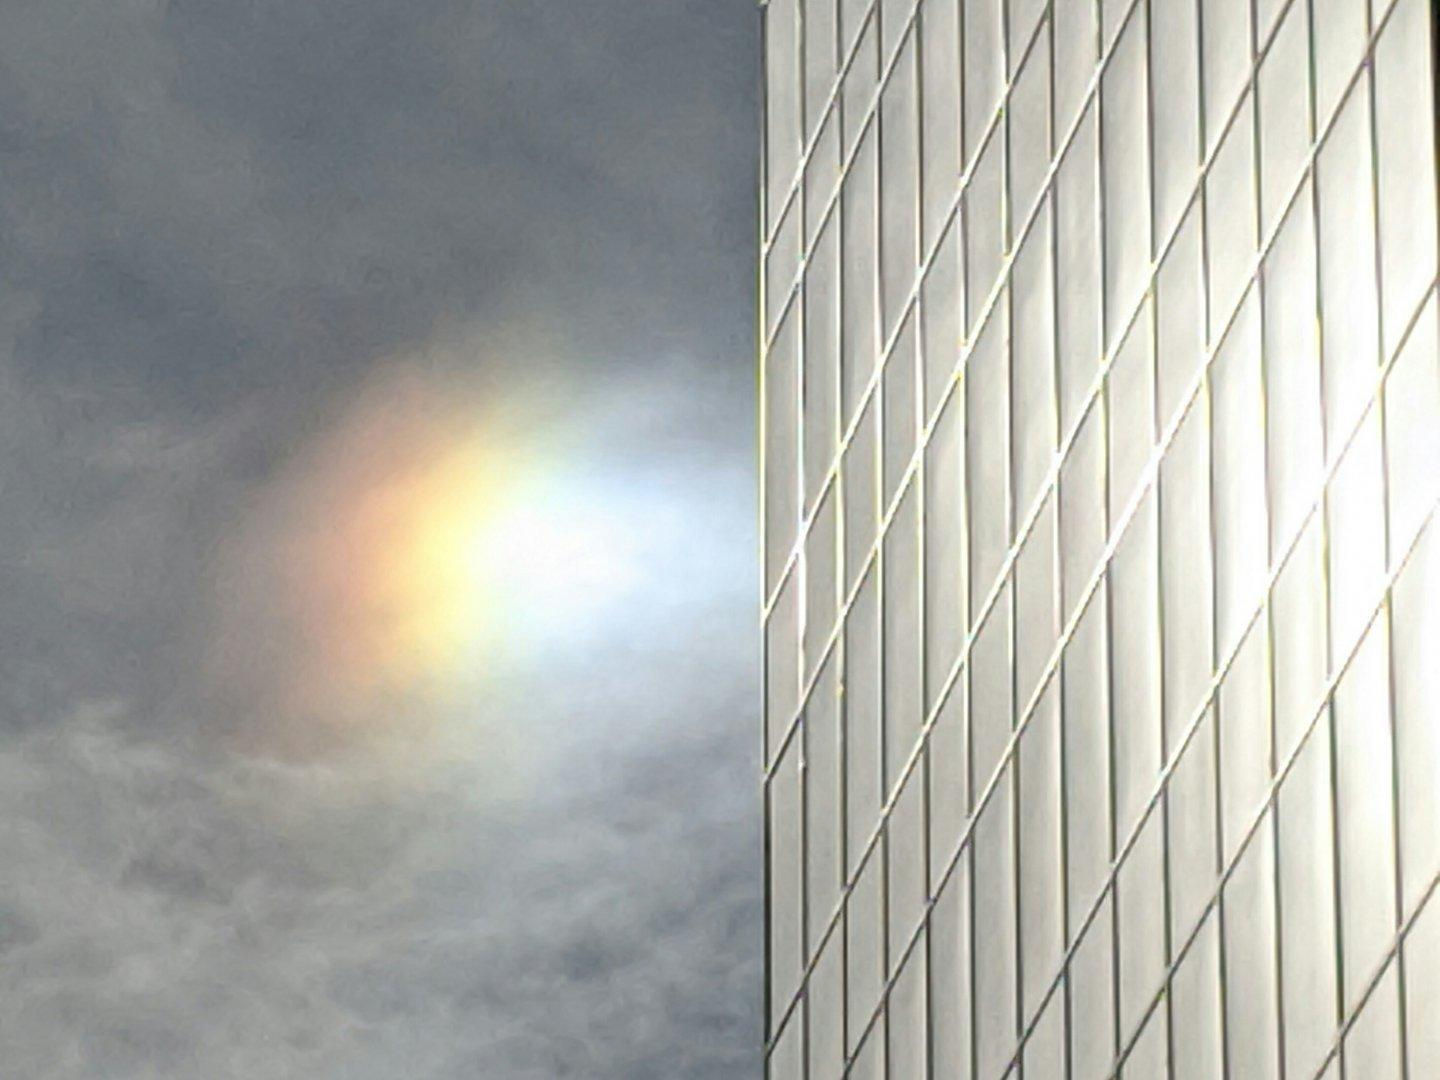 A bright #sundog next to a glass-sided building. The sun is off to the left out of frame. The sundog had a bit more color and more of the spectrum in it as seen through my polarized sunglasses, so I kind of wish I'd taken a shot through one of the lenses, but at least you can see how bright it was. I haven't adjusted the color on this image at all - except for cropping, it's straight out of my phone. #sky #halo